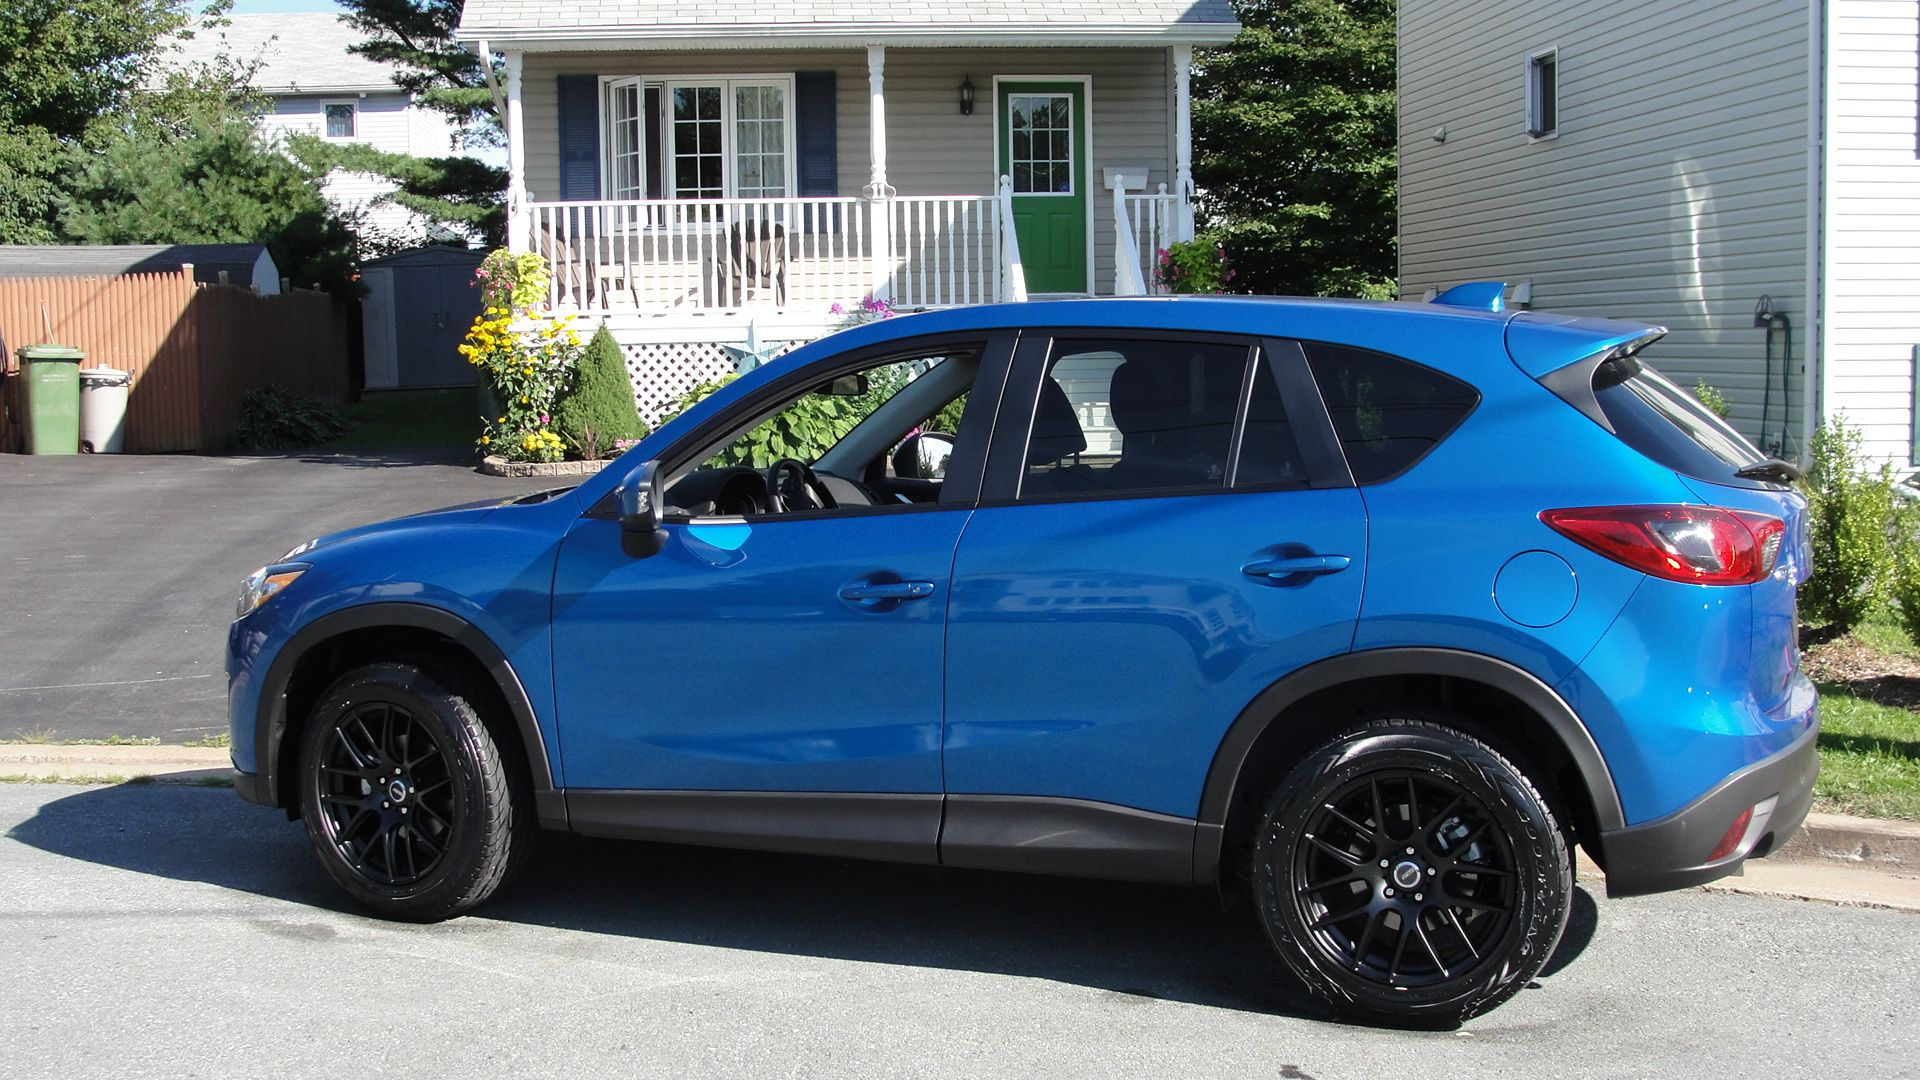 2012 Toyota Rav4 Official after market wheel thread - Page 2 - Mazda Forum ...